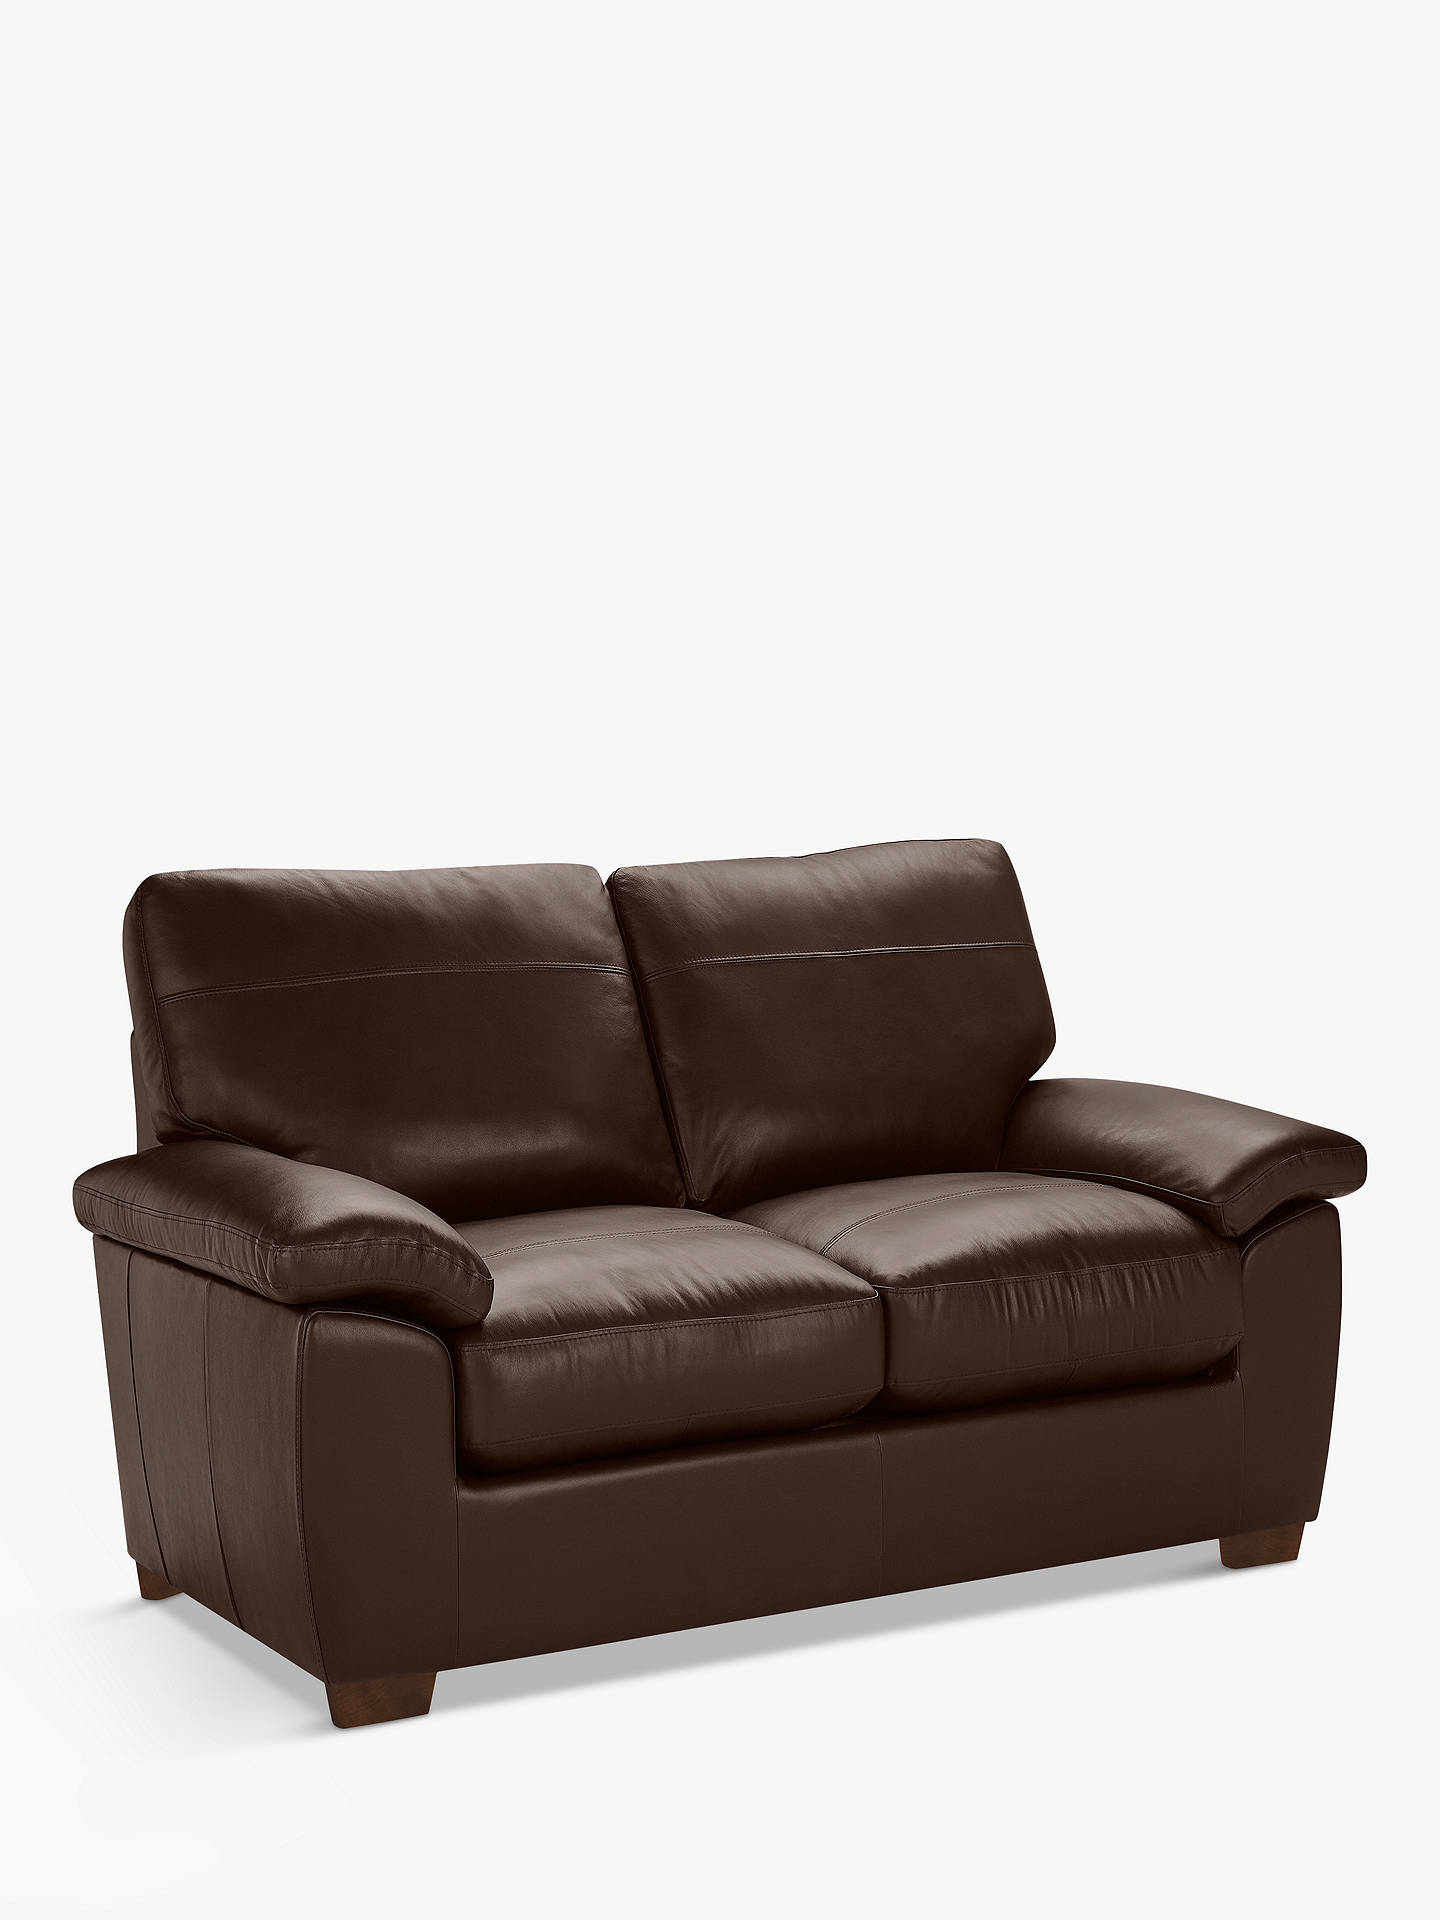 Buy John Lewis & Partners Camden Small 2 Seater Leather Sofa, Dark Leg, Contempo Dark Chocolate Online at johnlewis.com